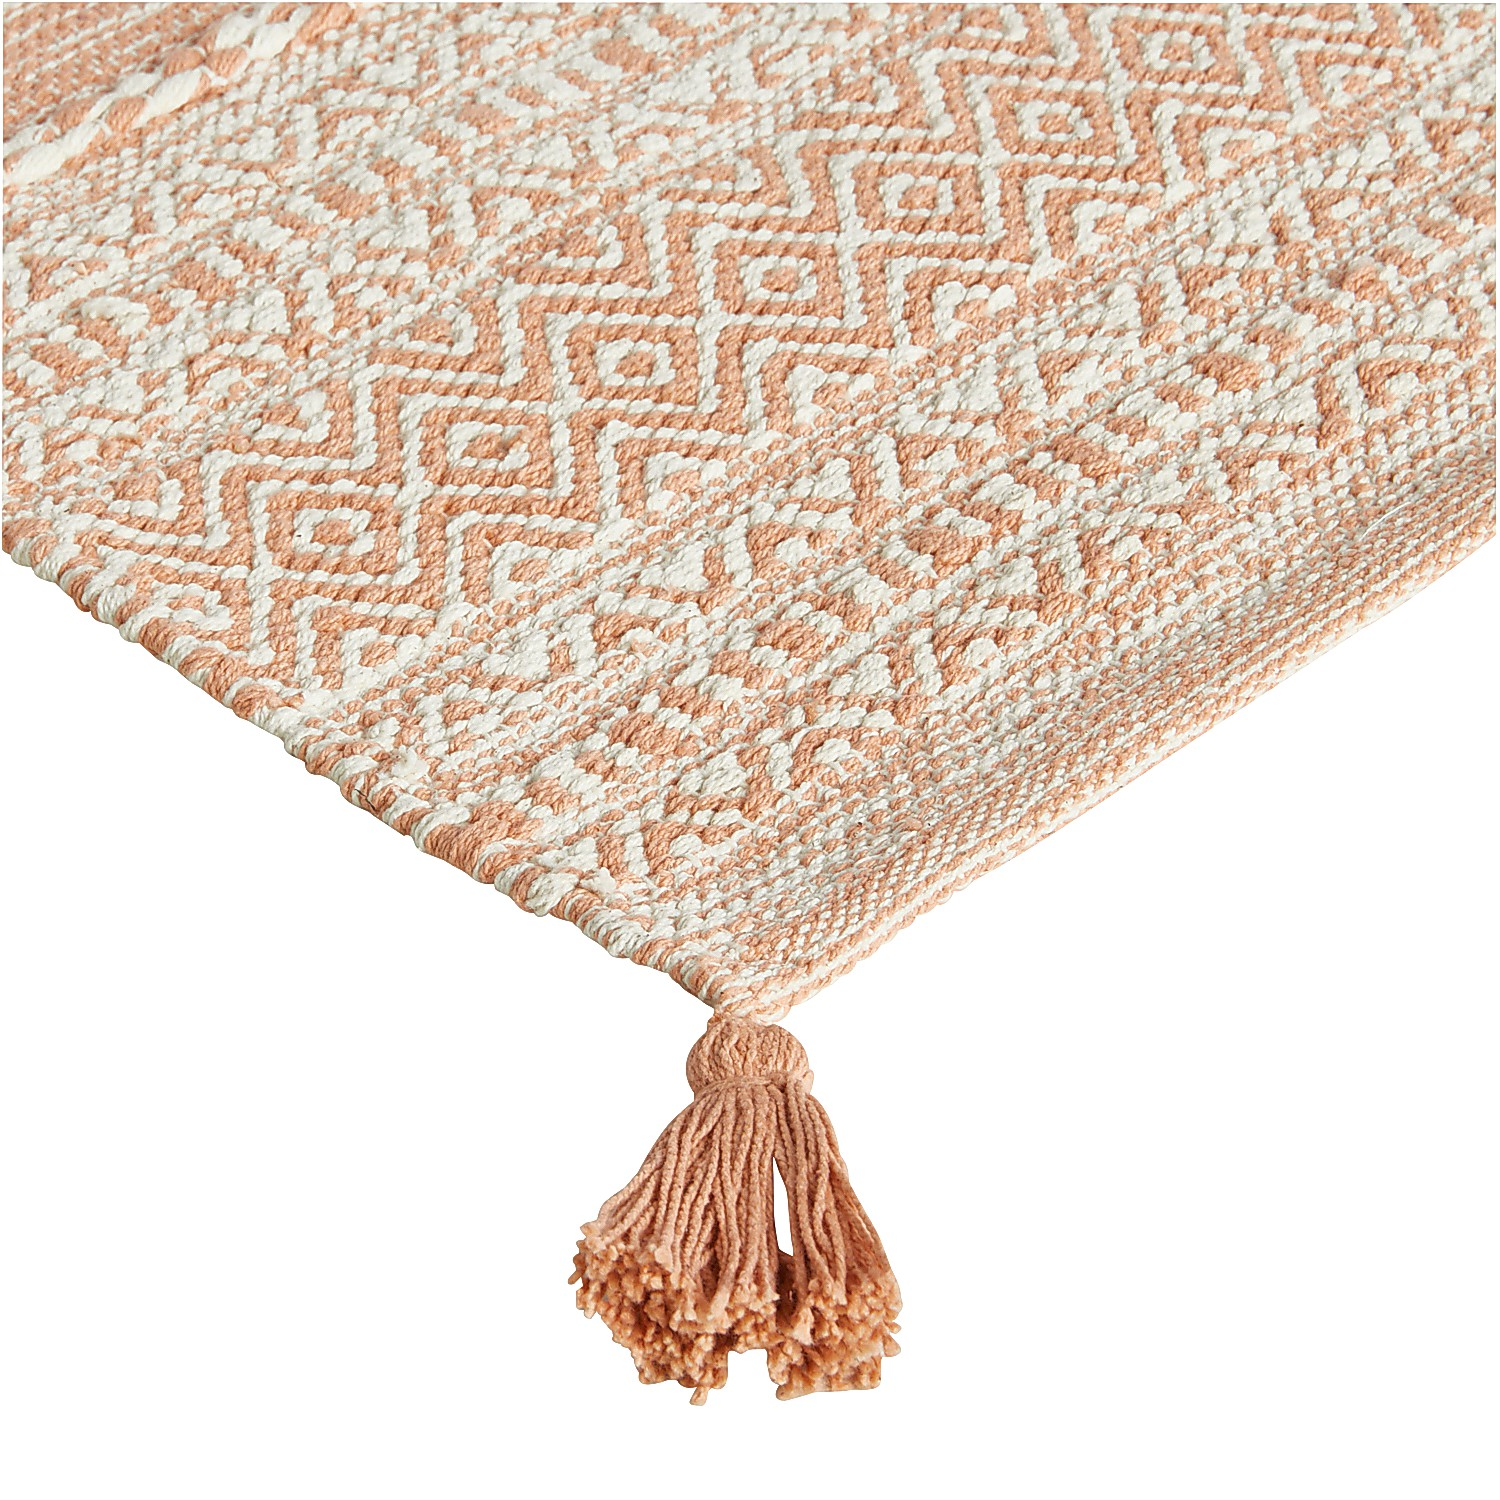 variation thumbnail of Blended Orange 2x3 Rug with Tassels